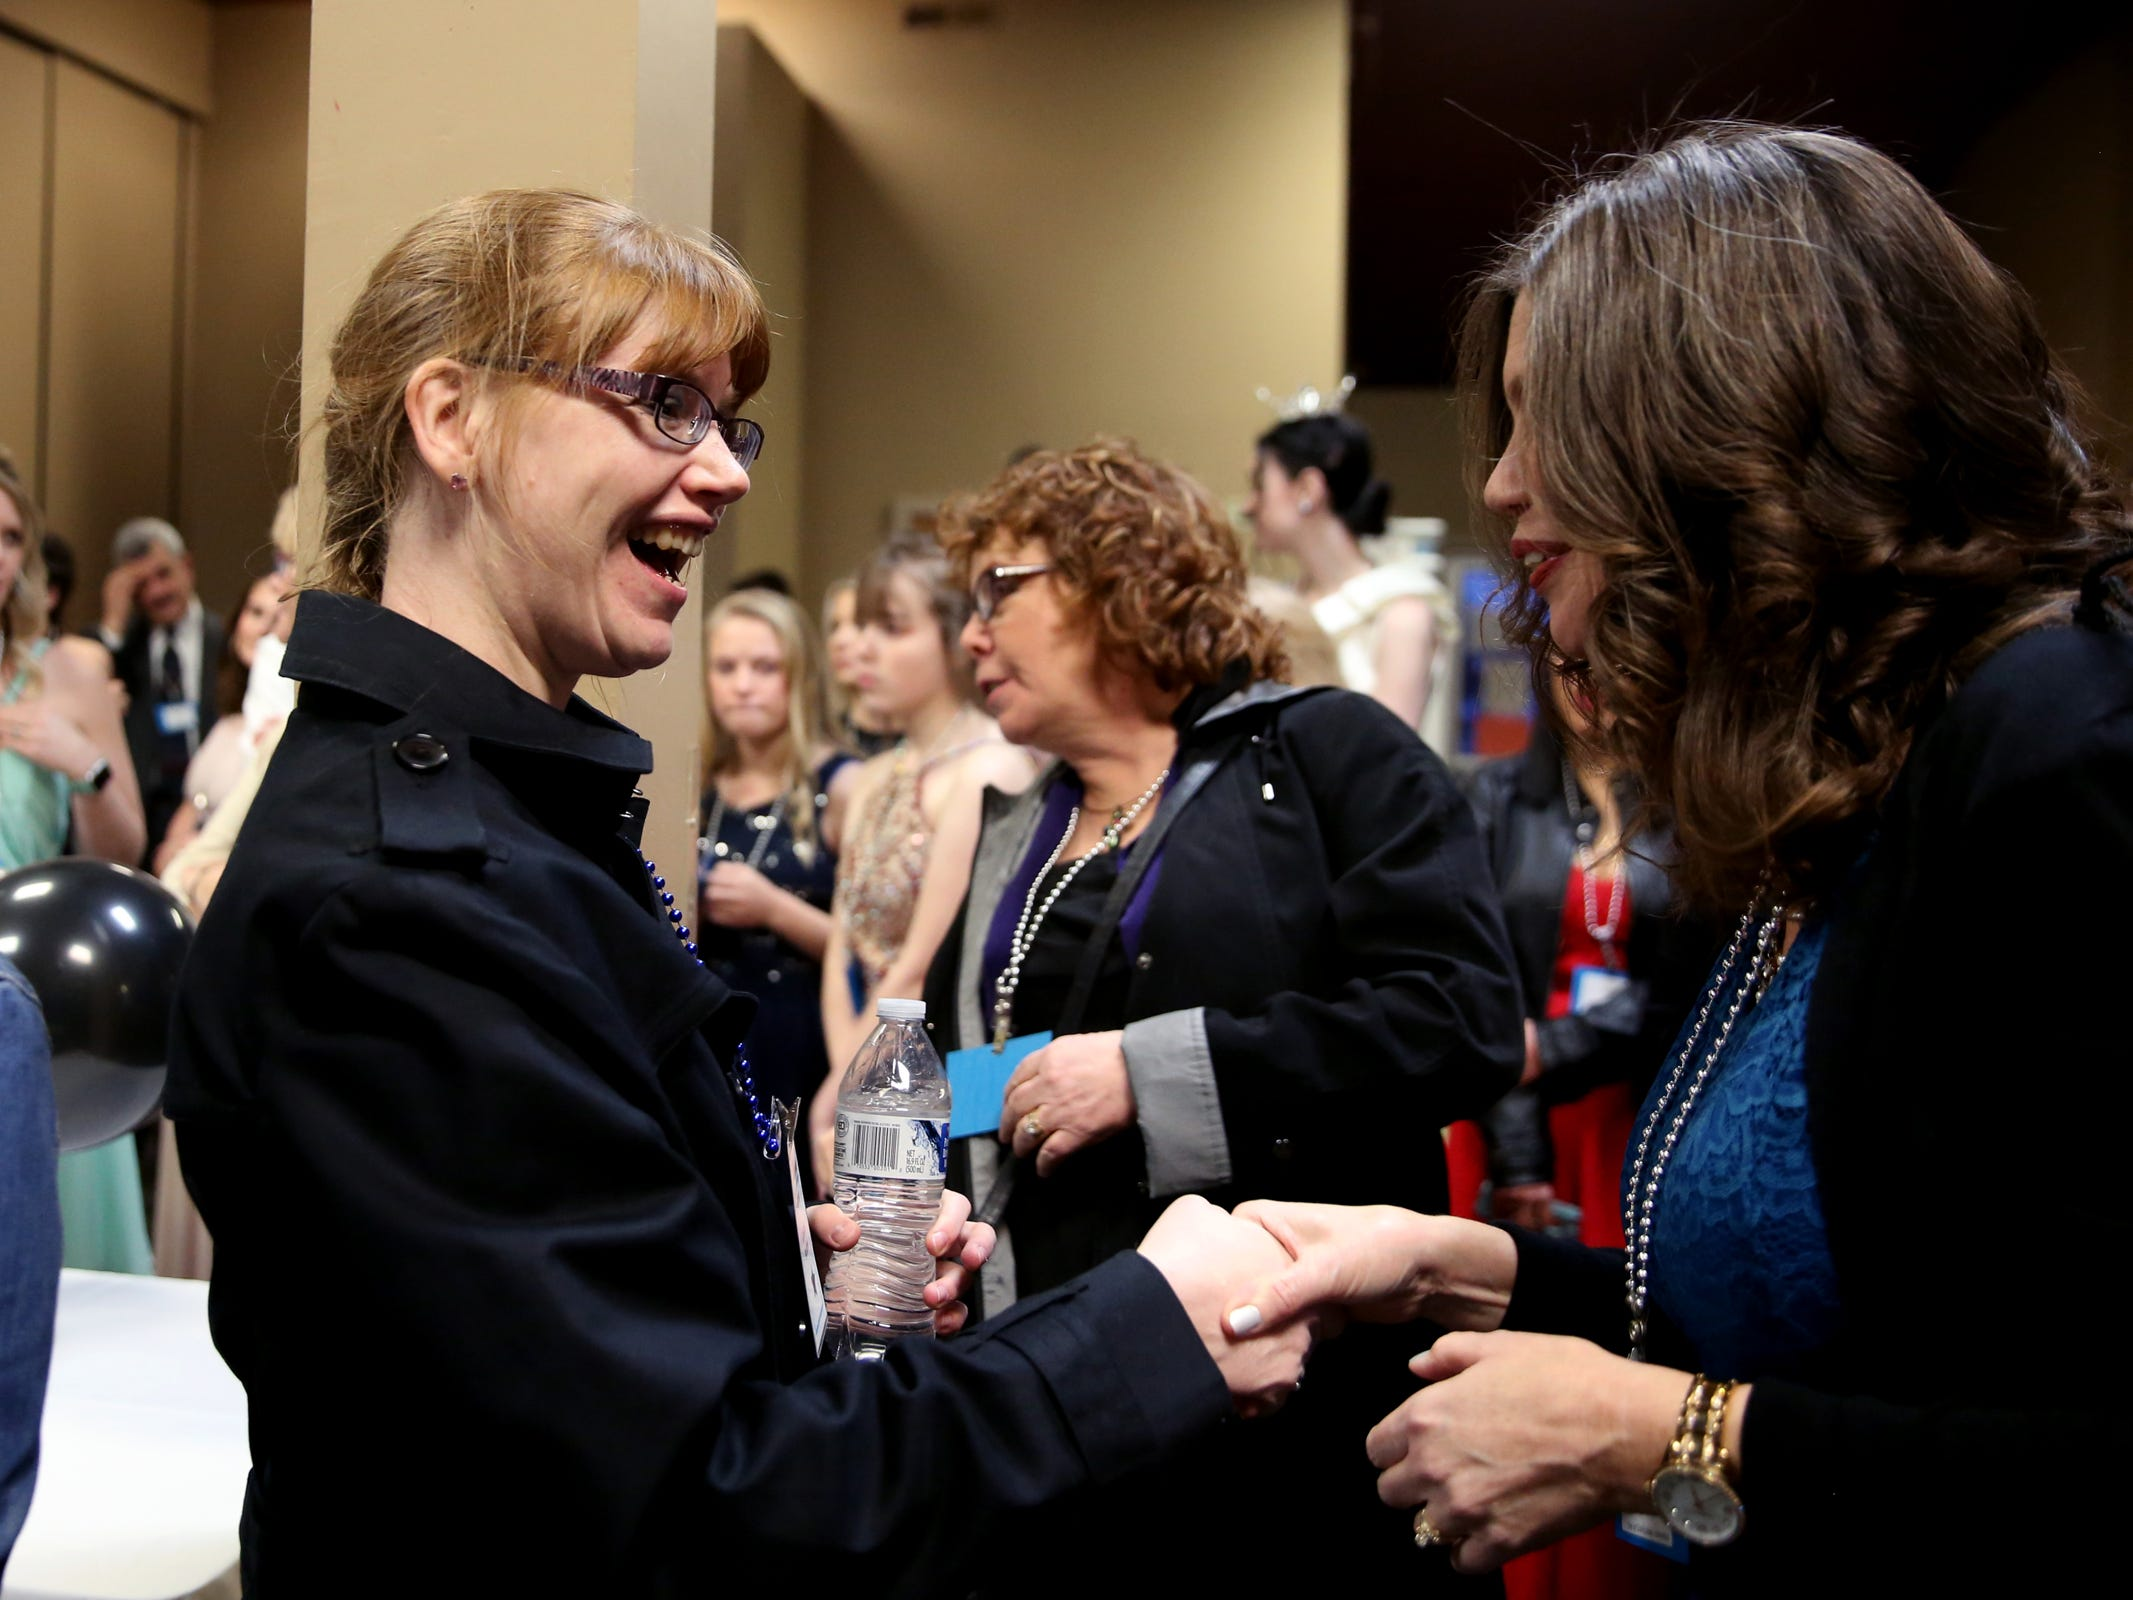 Kris Burden, left, 36, of Salem, meets her designated partner, Joy Biondi, of Keizer, during Night to Shine, a prom night experience for people with special needs, at Salem Alliance Church on Friday, Feb. 8, 2019.